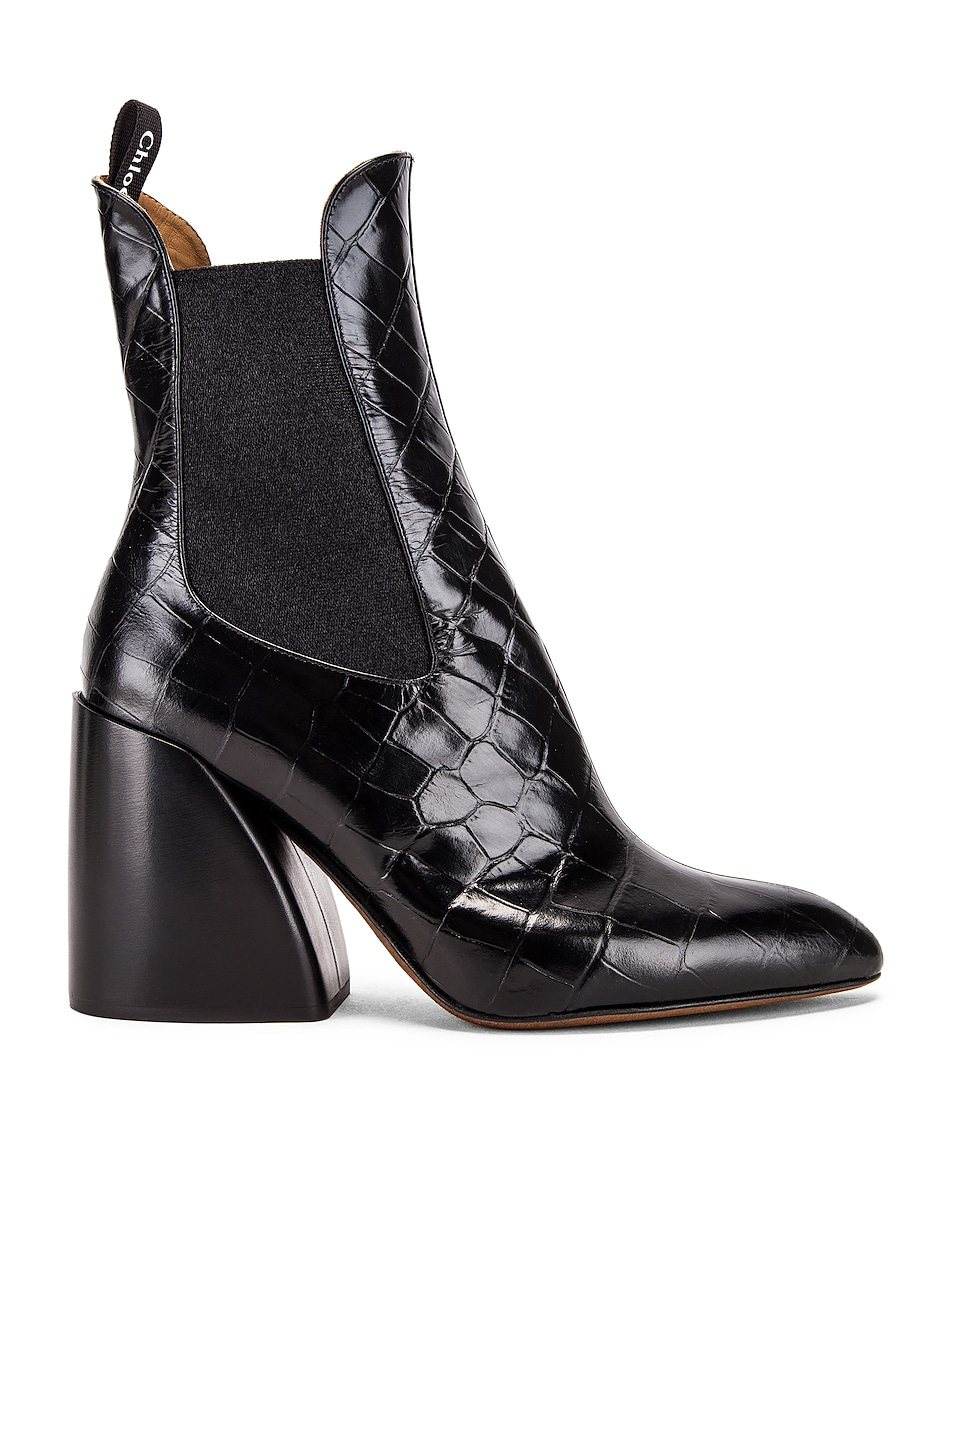 Image 1 of Chloe Croc Embossed Chelsea Booties in Black